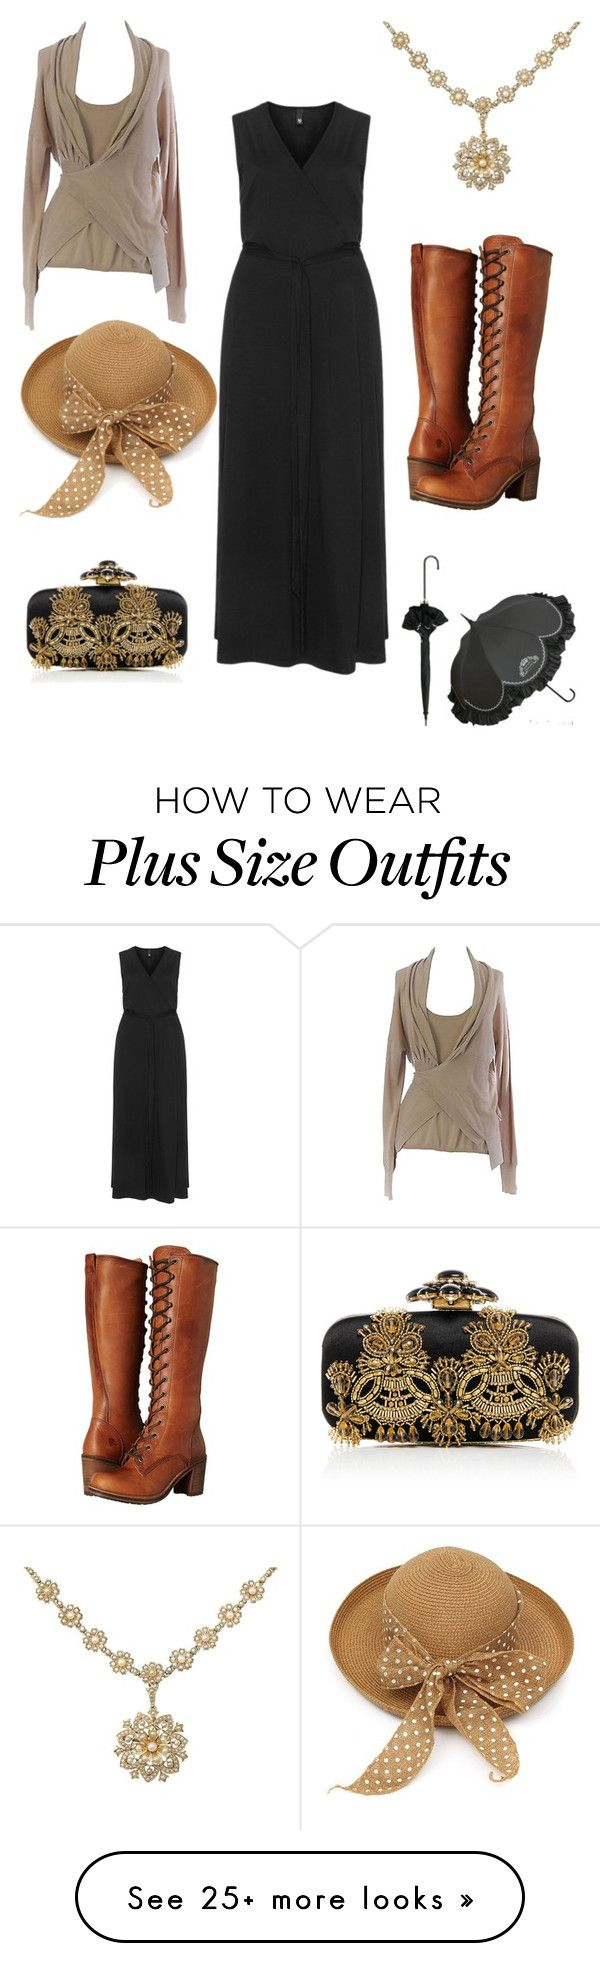 """plus size 1900's inspired"" by aleger-1 on Polyvore featuring Manon Baptiste, Marina Rinaldi, Frye and Oscar de la Renta"